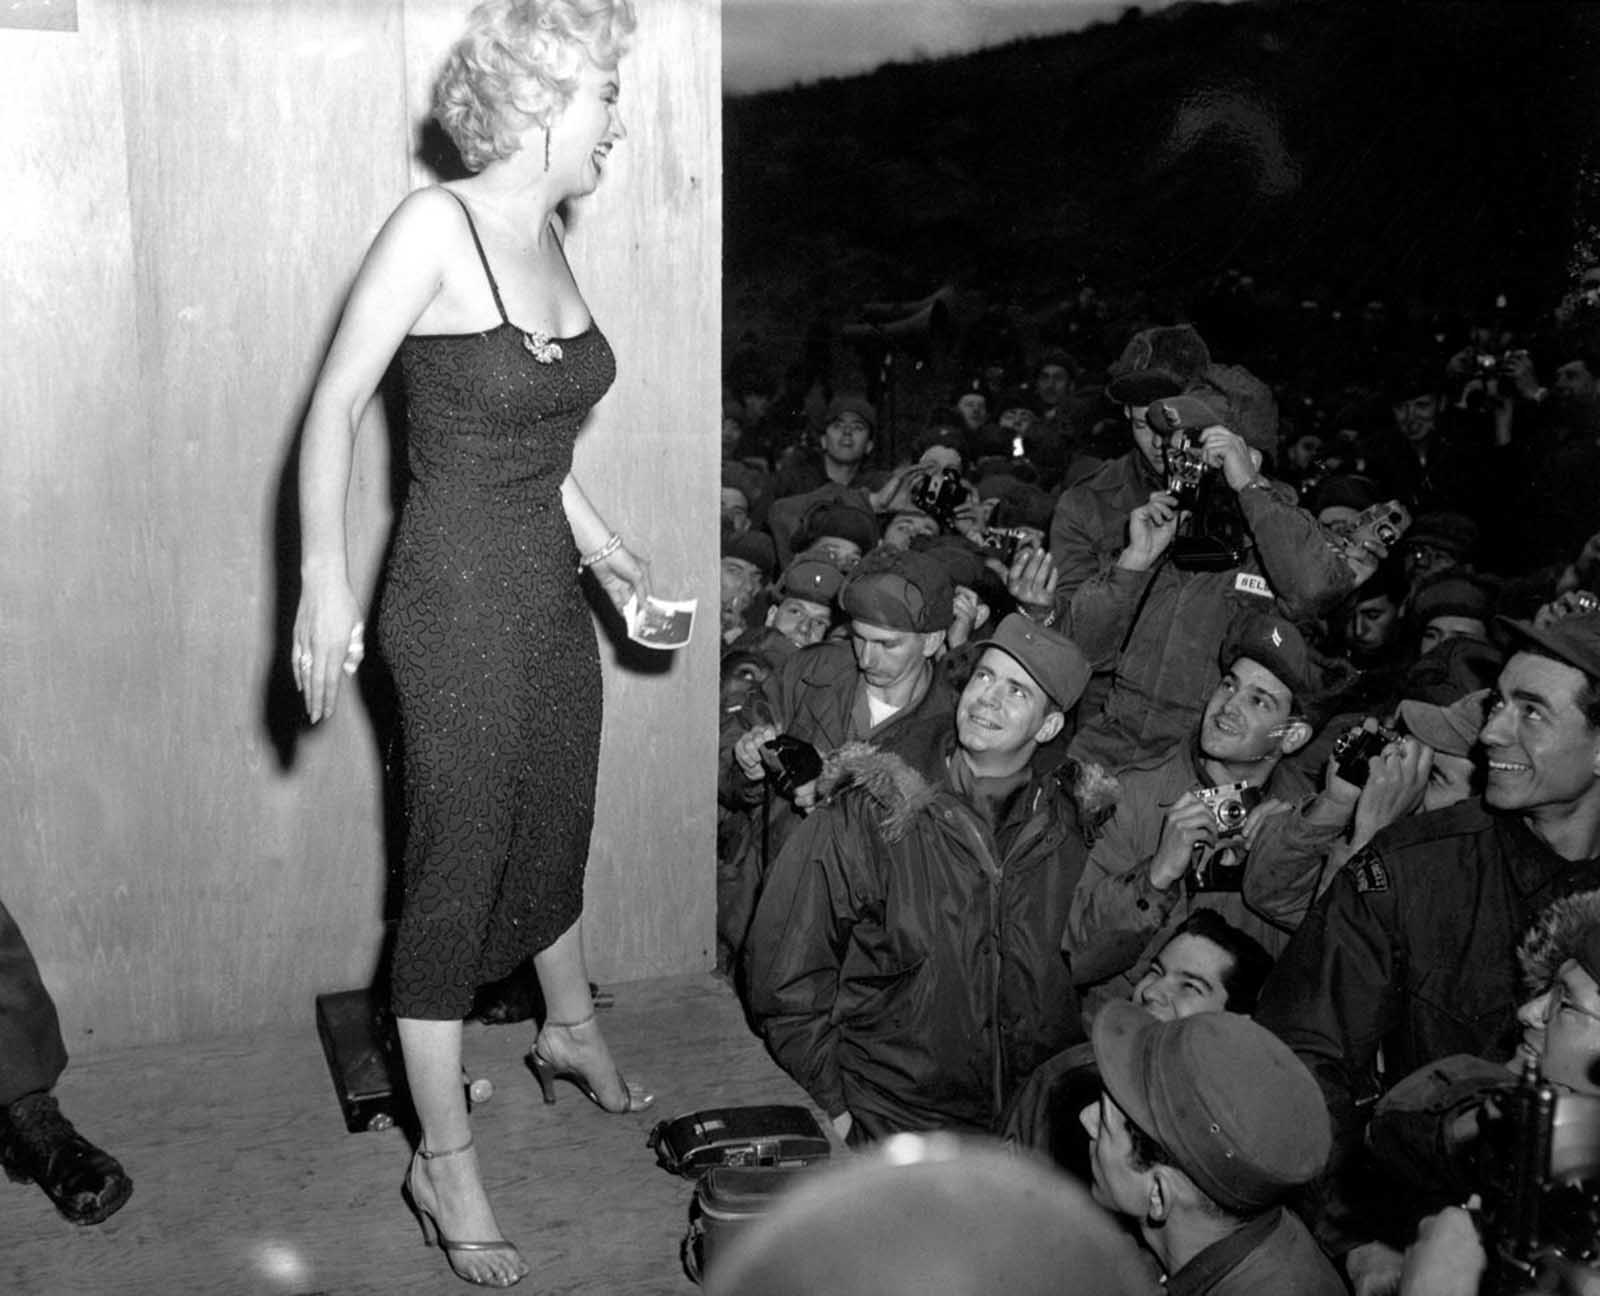 Monroe posing for soldiers in Korea.